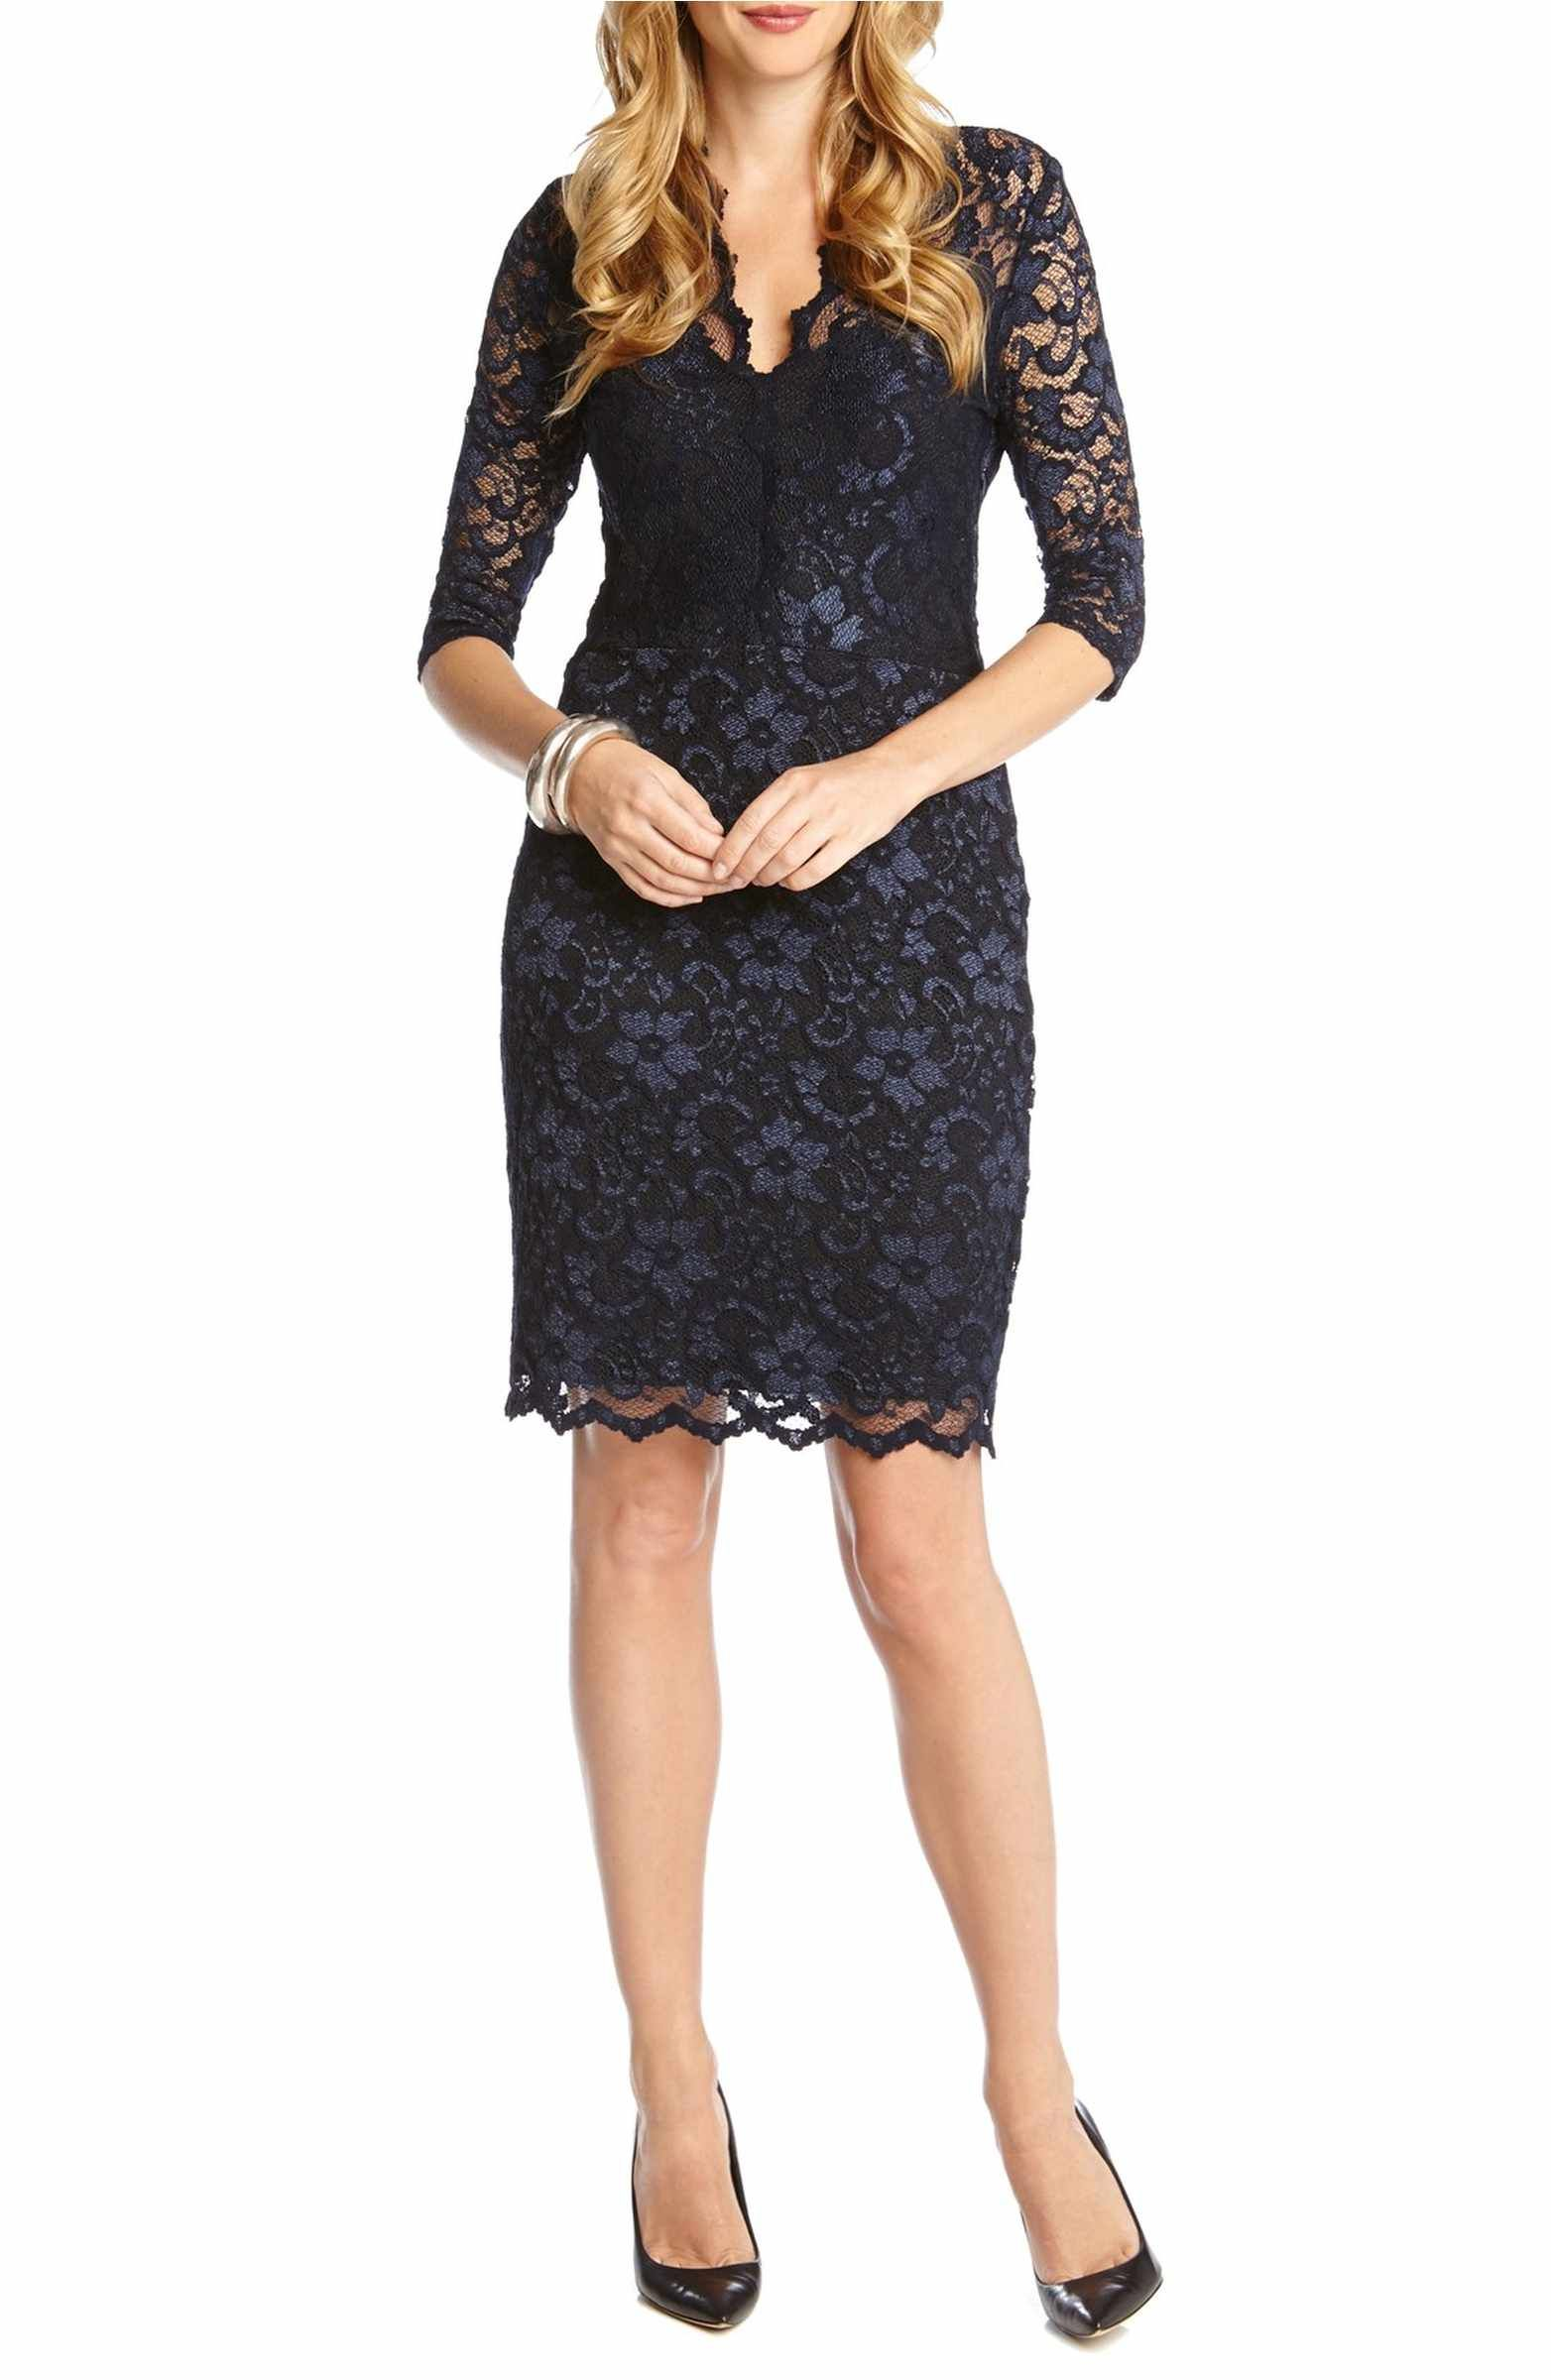 Sheath dresses for wedding guest  Scalloped Lace Sheath Dress  Lace sheath dress Scalloped lace and